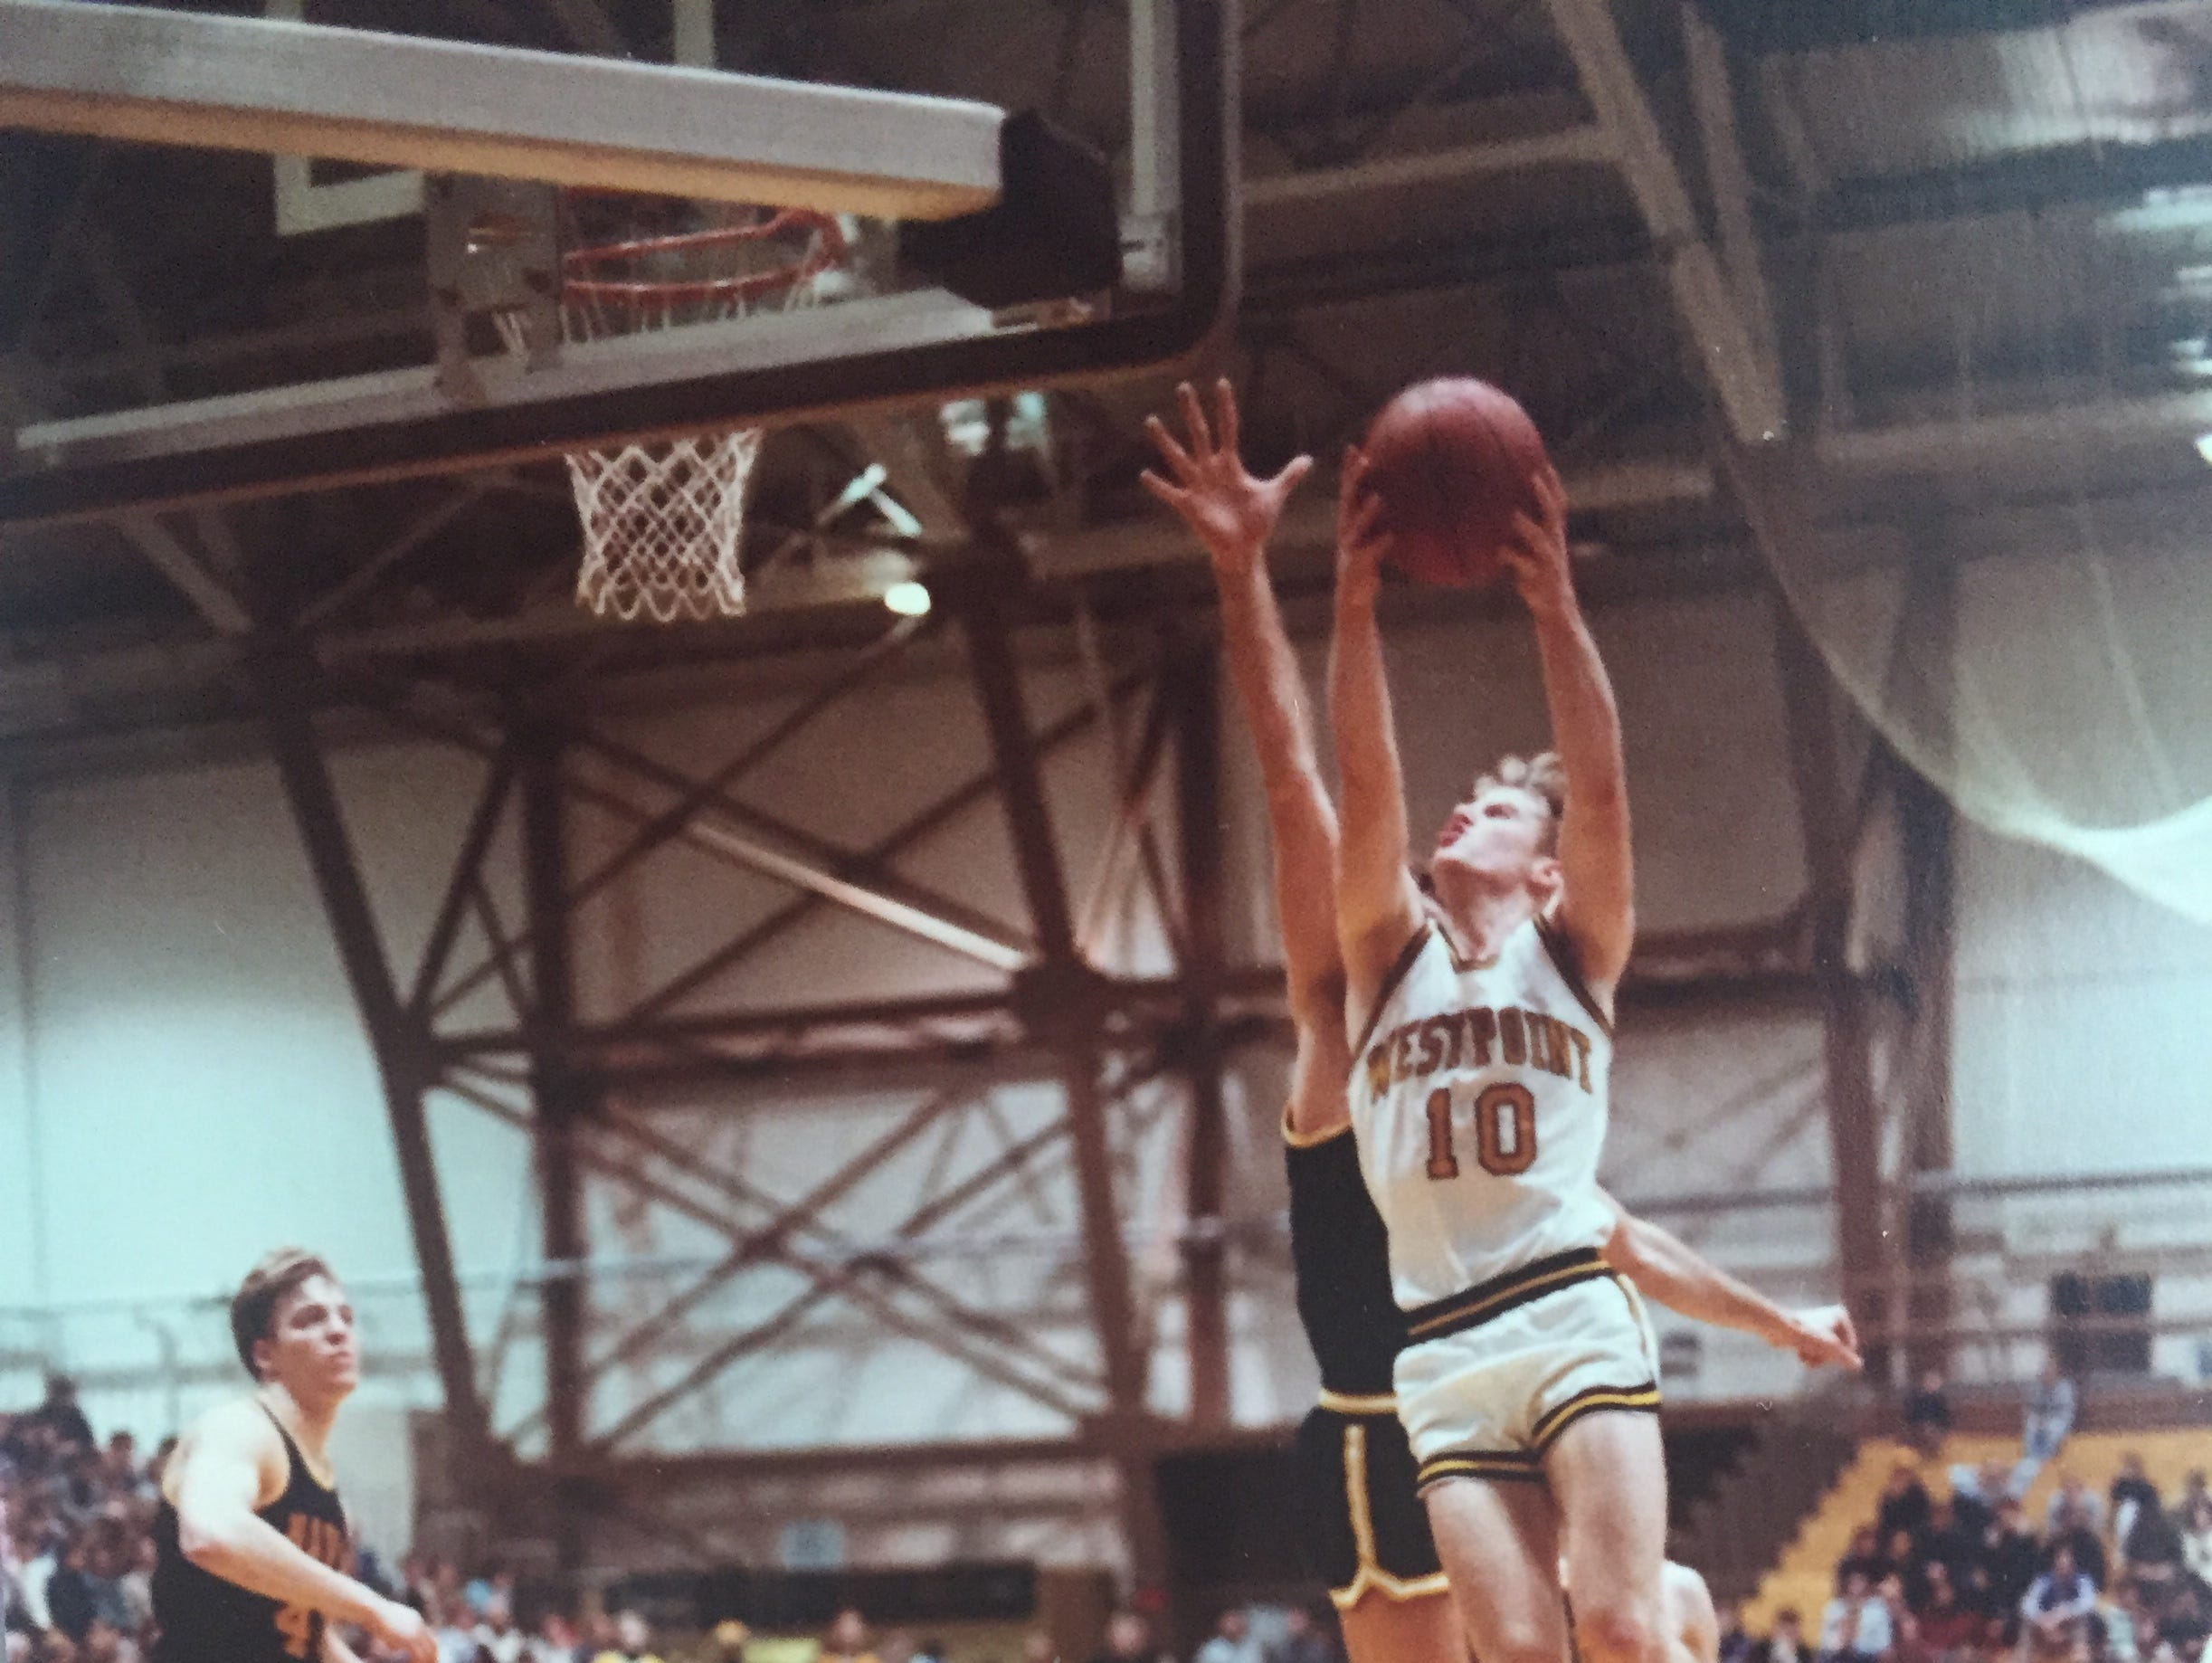 Joe McGuinness, who will be inducted into the Rockland County Sports Hall of Fame on Apr. 16, is pictured during his playing days at West Point.